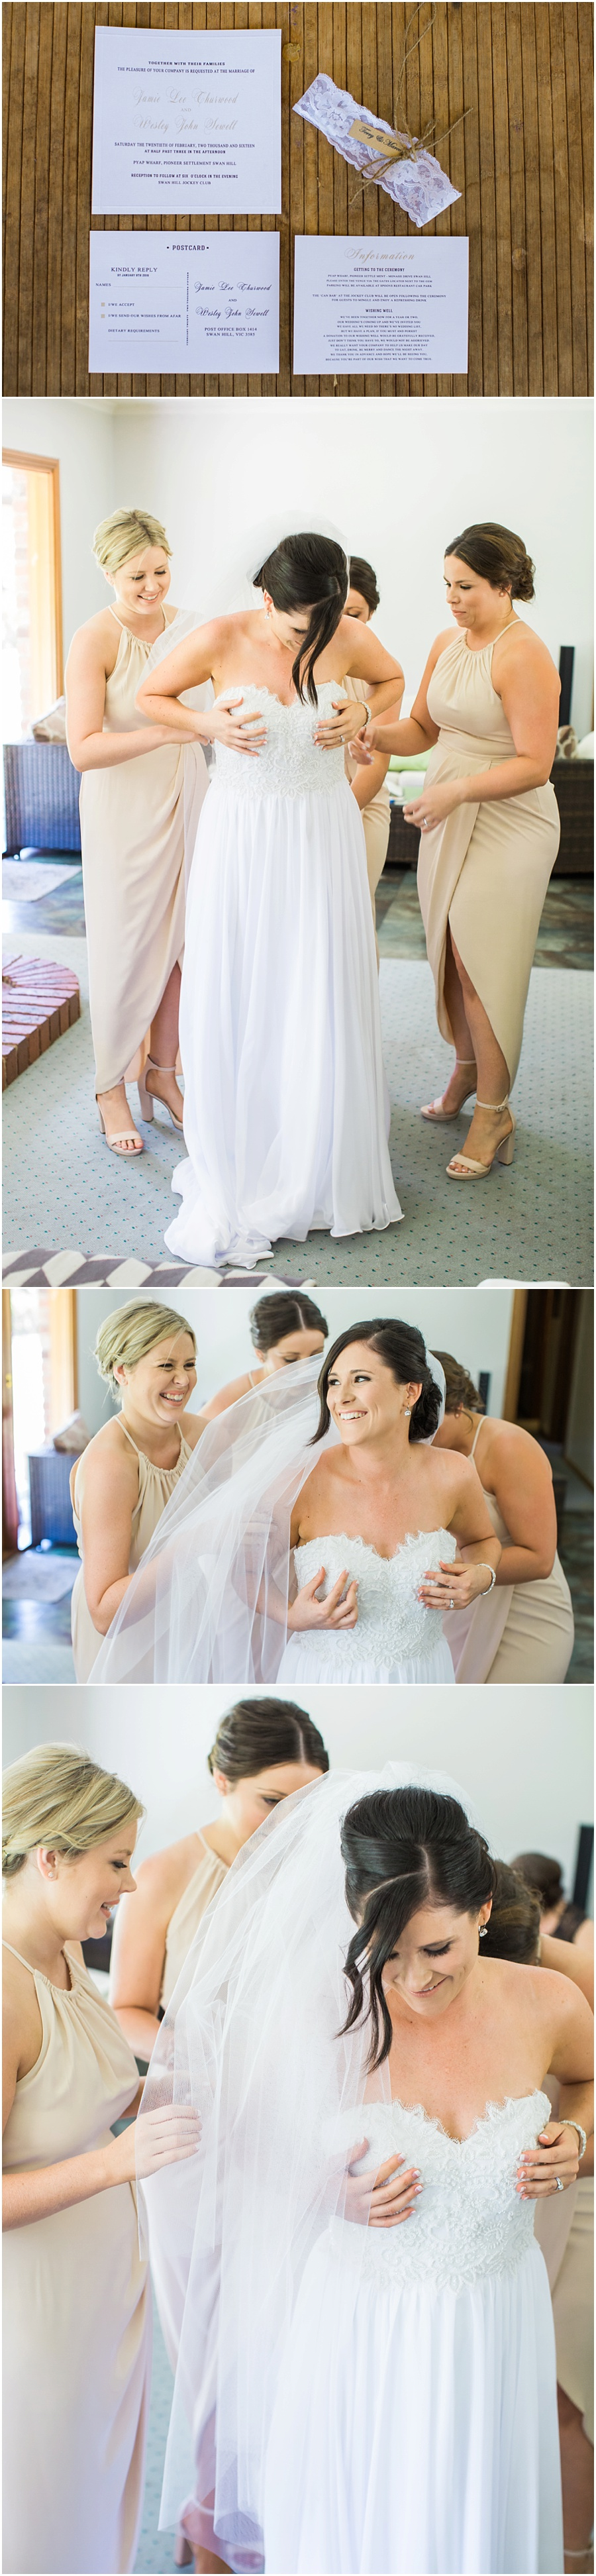 Daylesford Wedding Photographer_0053